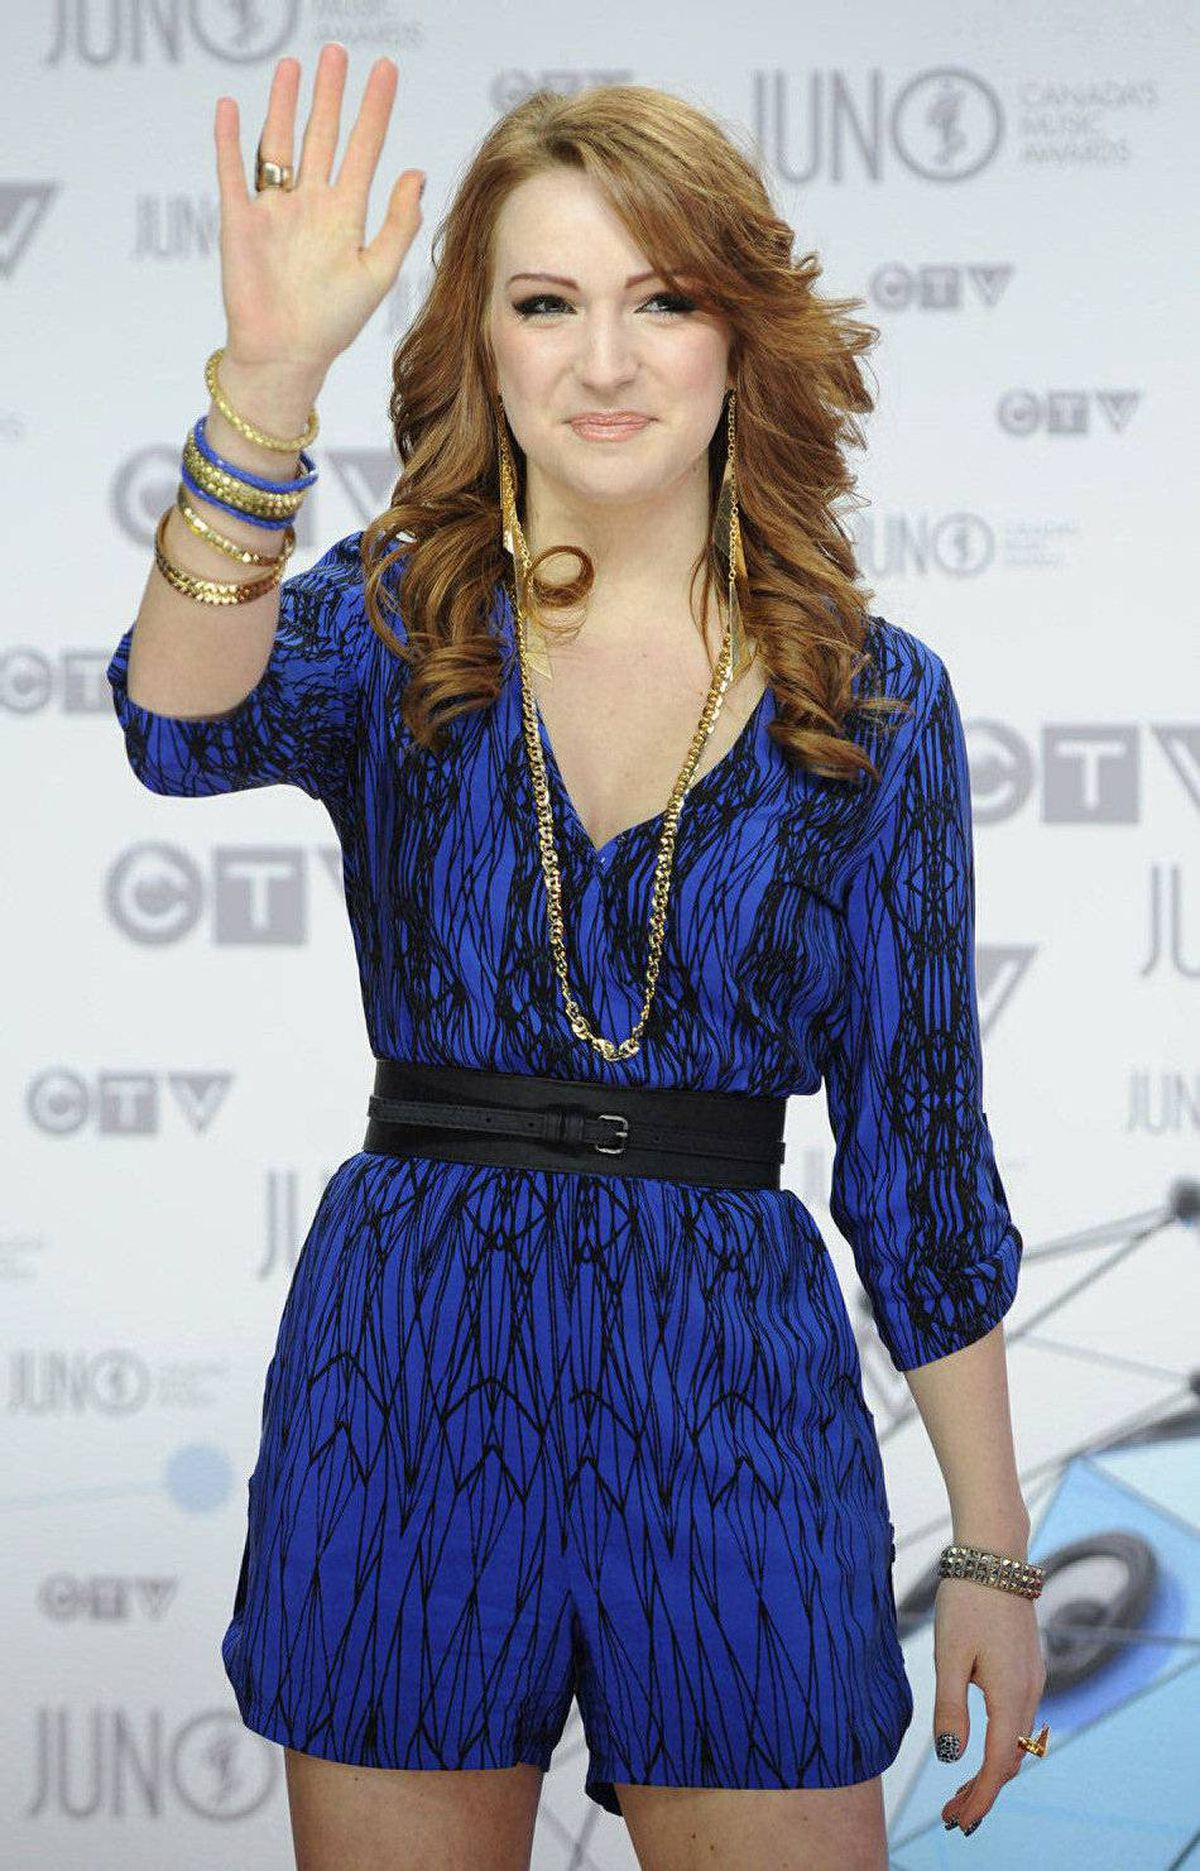 Victoria Duffield waves as she poses for photographers on the red carpet at the Juno Awards in Ottawa, Sunday April 1, 2012.